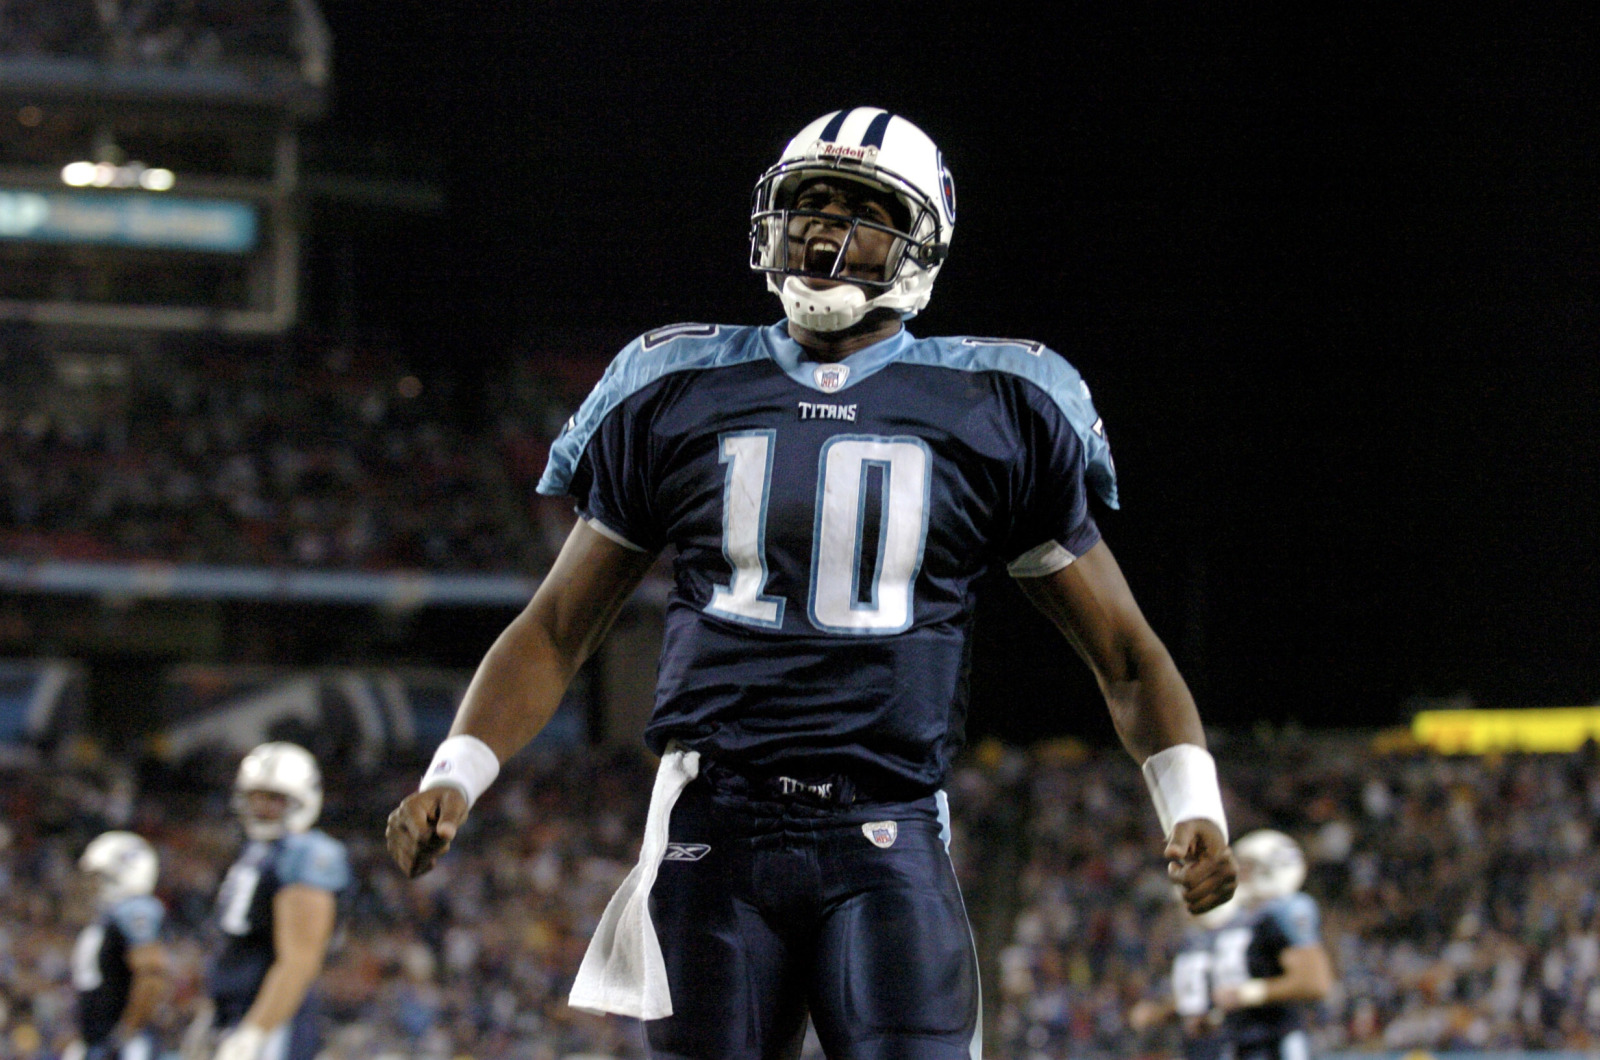 Texas Football: Vince Young was highest rated QB recruit since 2000